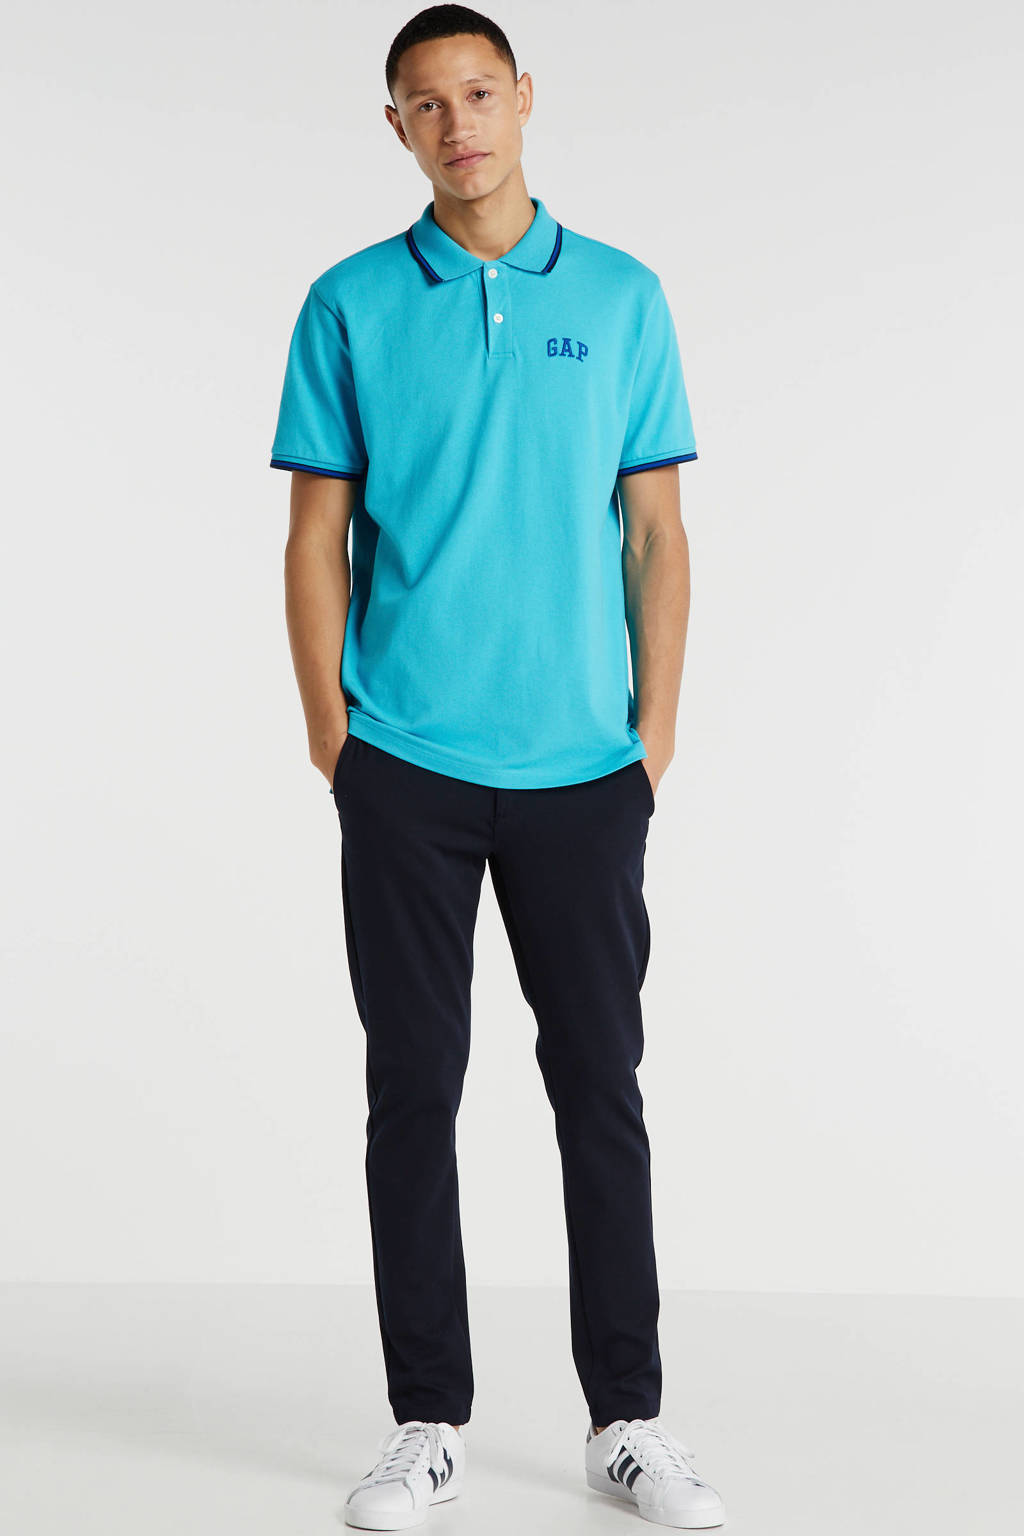 GAP slim fit polo met logo tuquoise pool, Tuquoise Pool